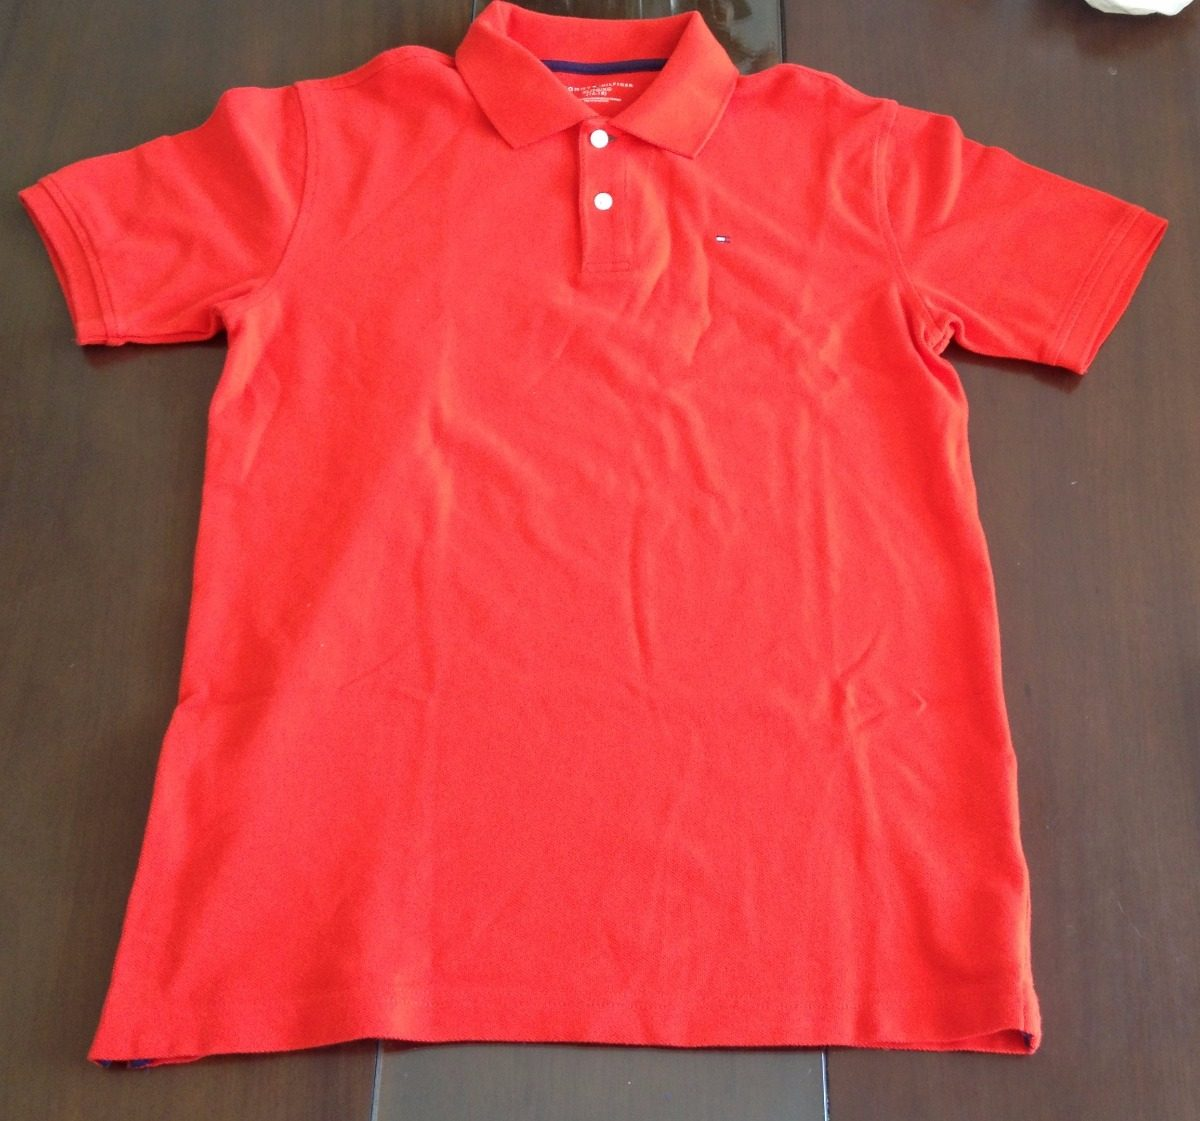 a5f278d40 camiseta polo tommy hilfiger original(xl 16-18 anos). Carregando zoom.